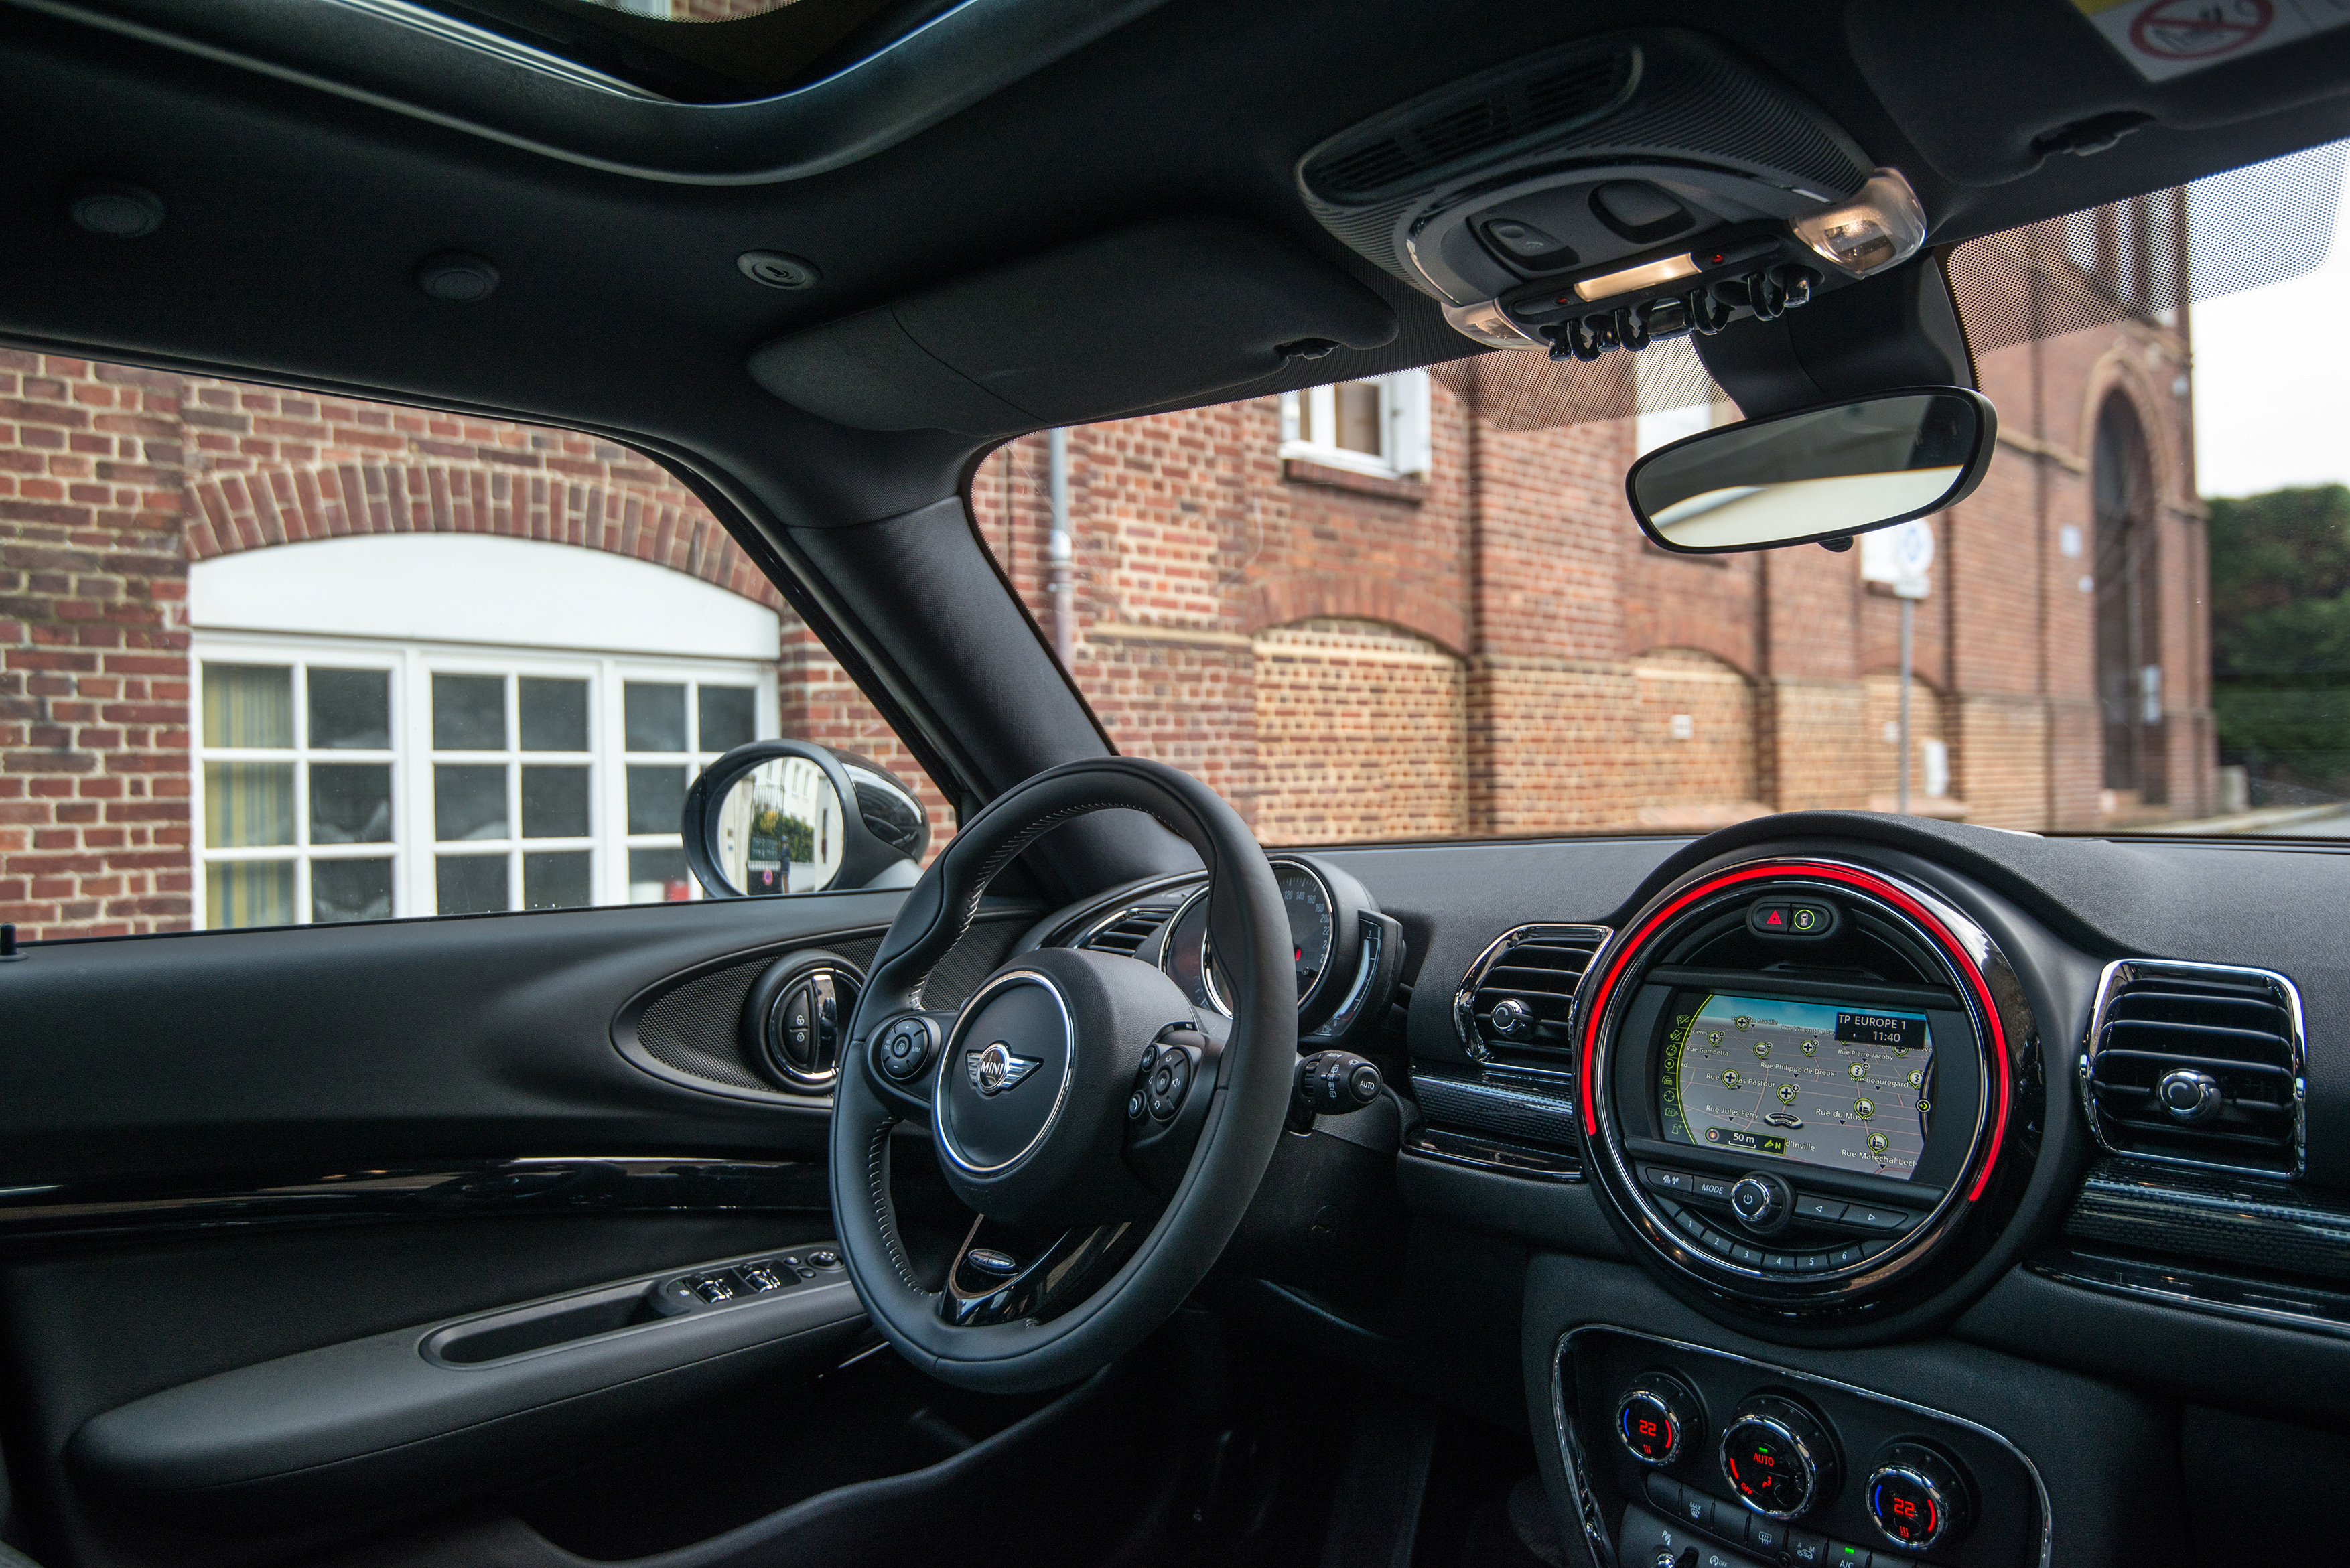 MINI Cooper S Clubman Interior, HD Cars, 4k Wallpapers, Images ...